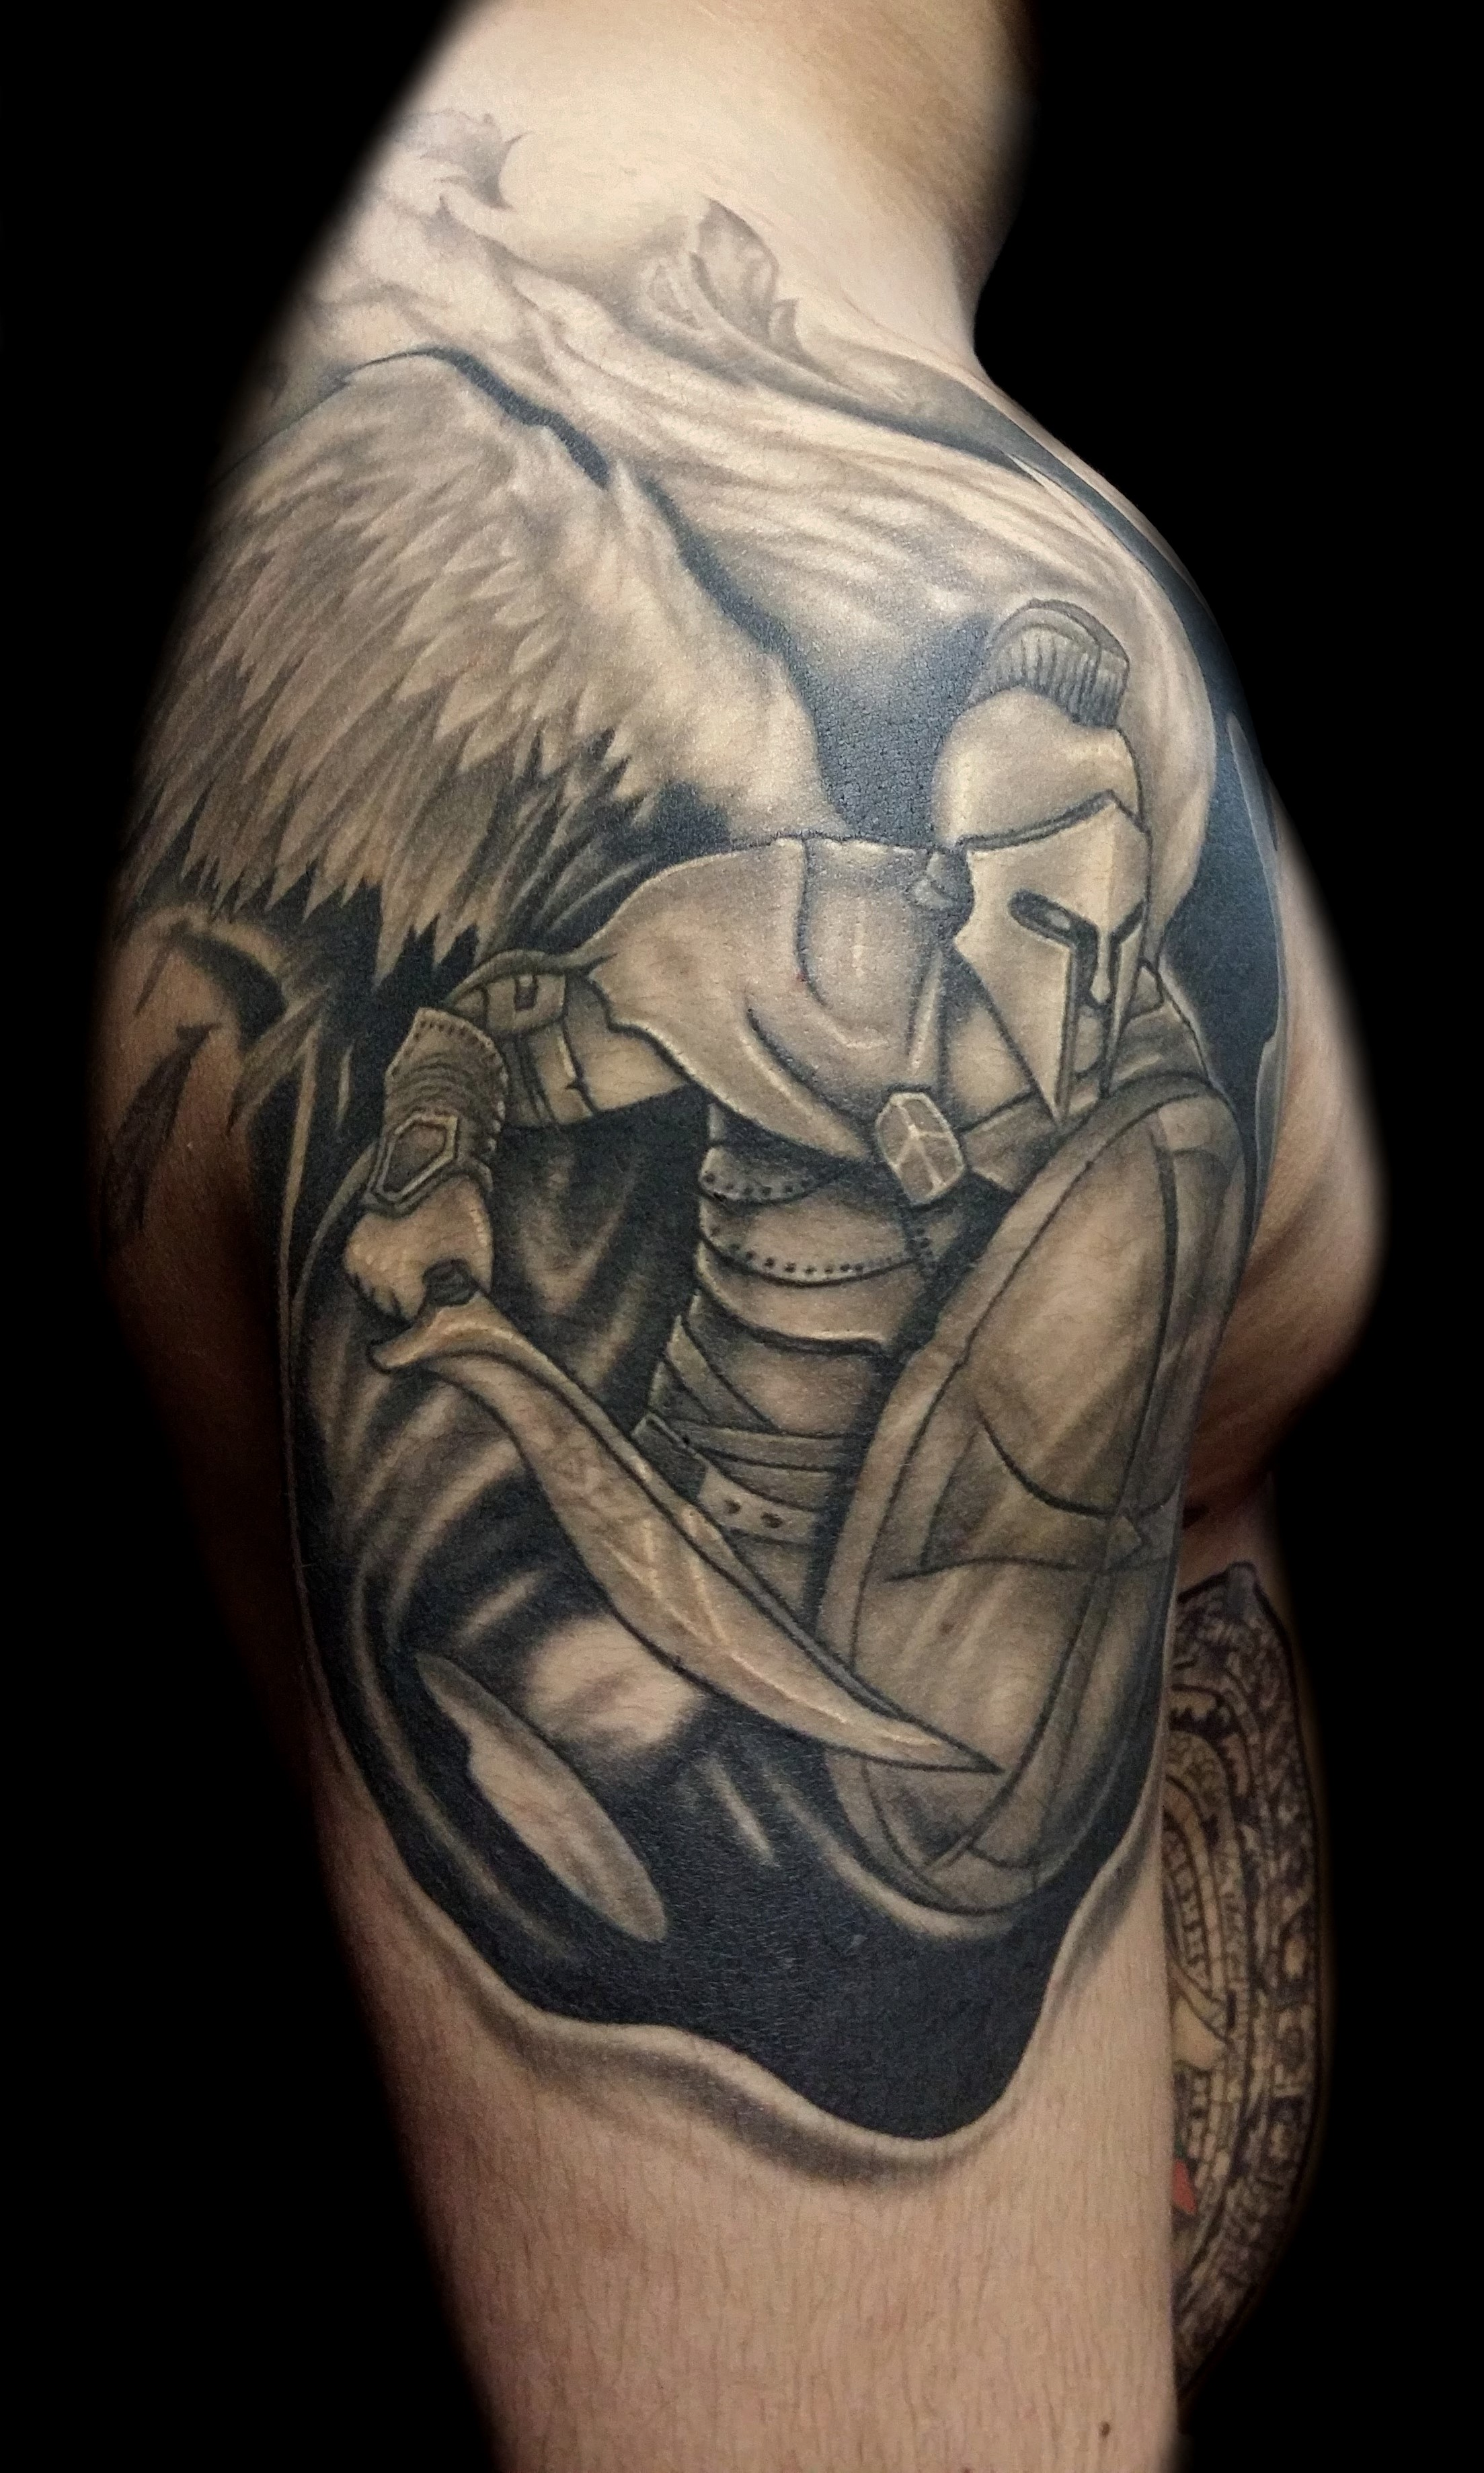 arch angel - right shoulder